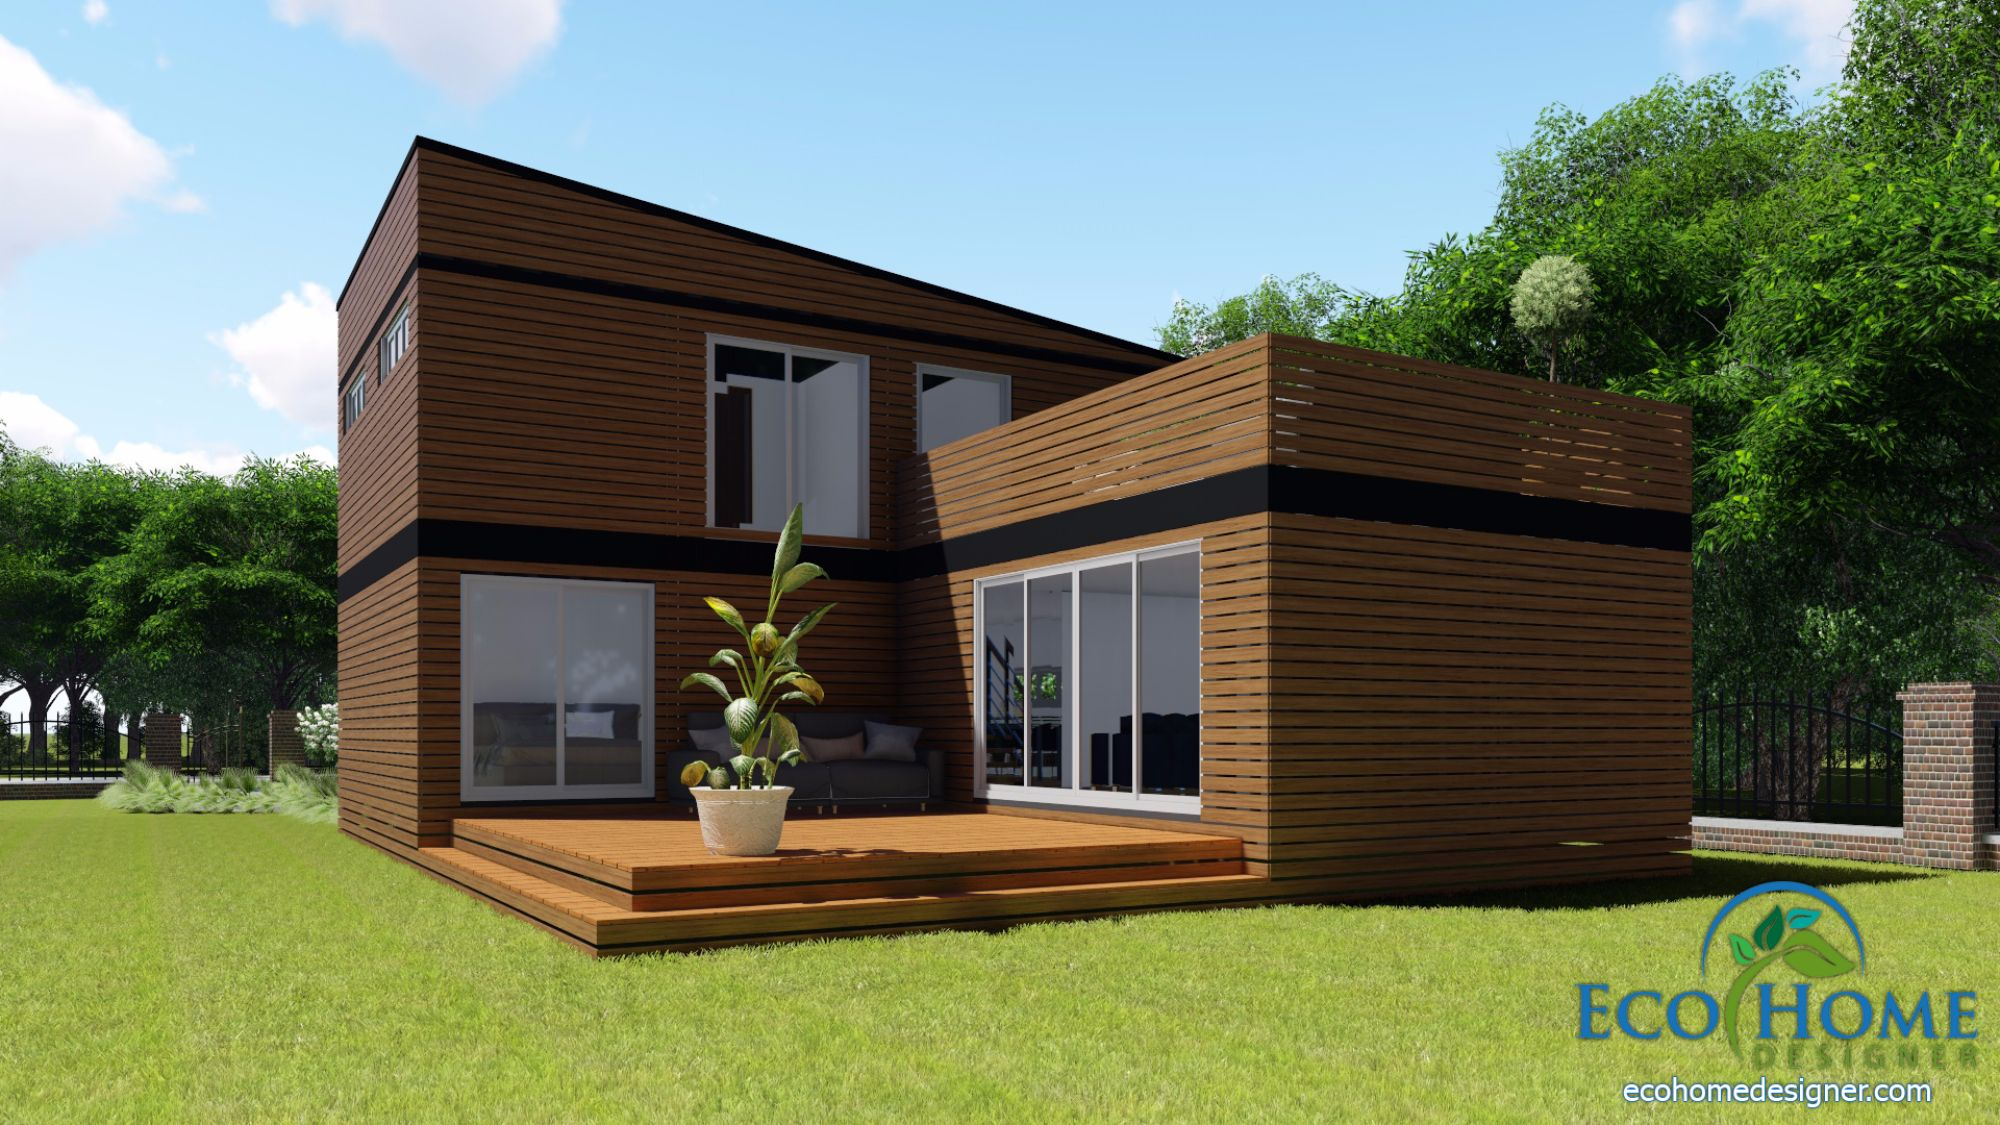 Sch17 10 x 20ft 2 story container home plans eco home for Eco home plans